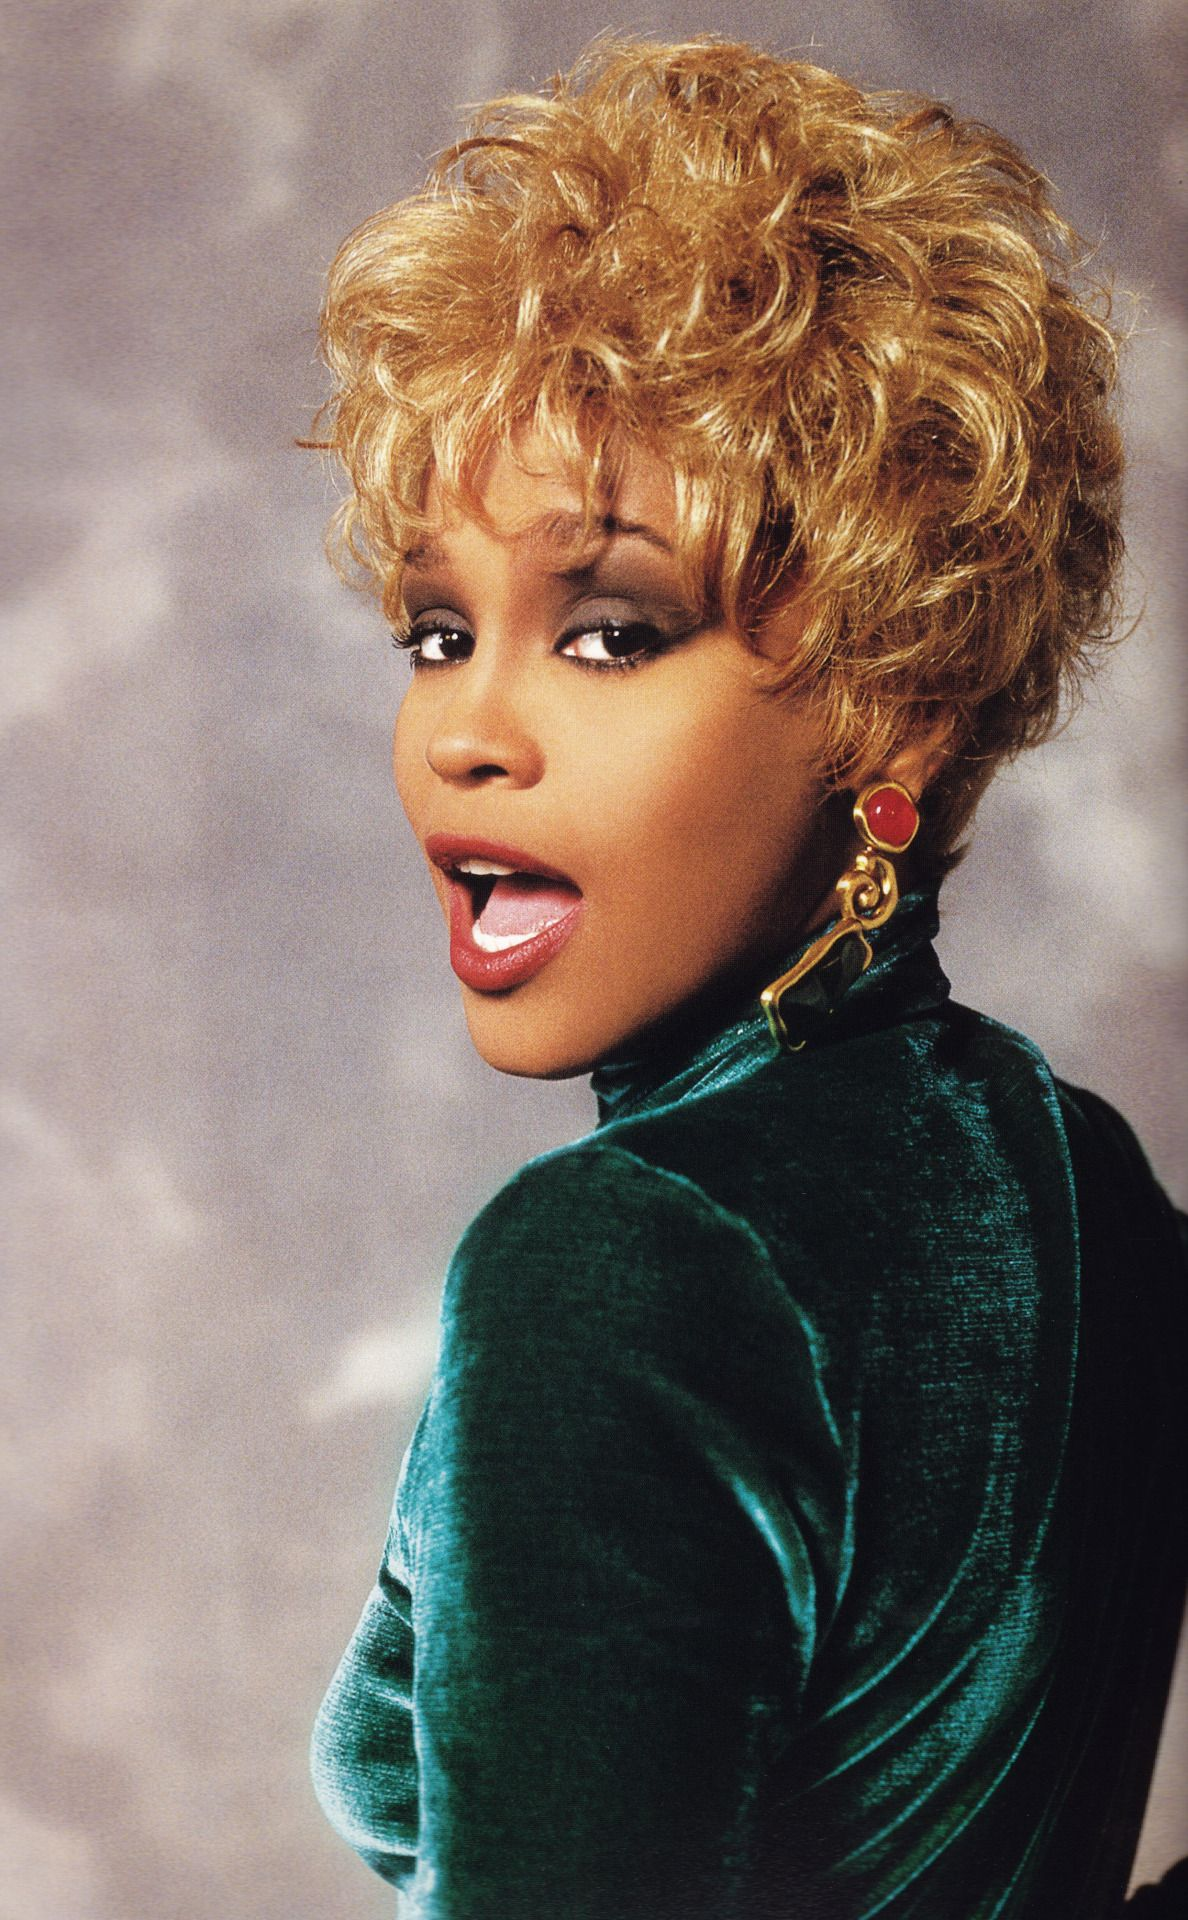 Whitney Houston A Geek of Considerable Ambition Whitney